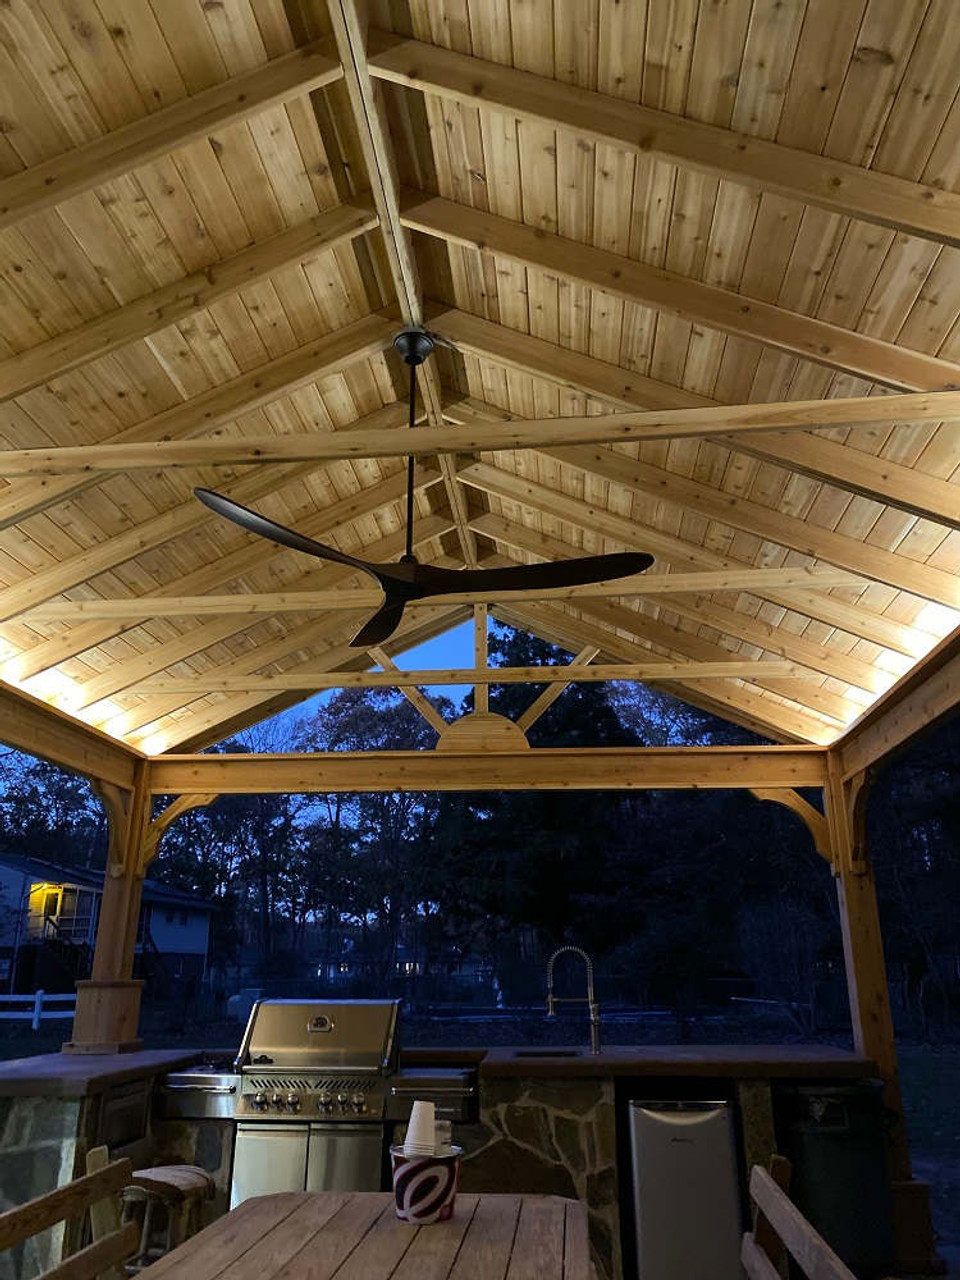 16x20 Red Cedar Gable Roof Pavilion Kit with High ceiling for BBQ, White Plains, MD